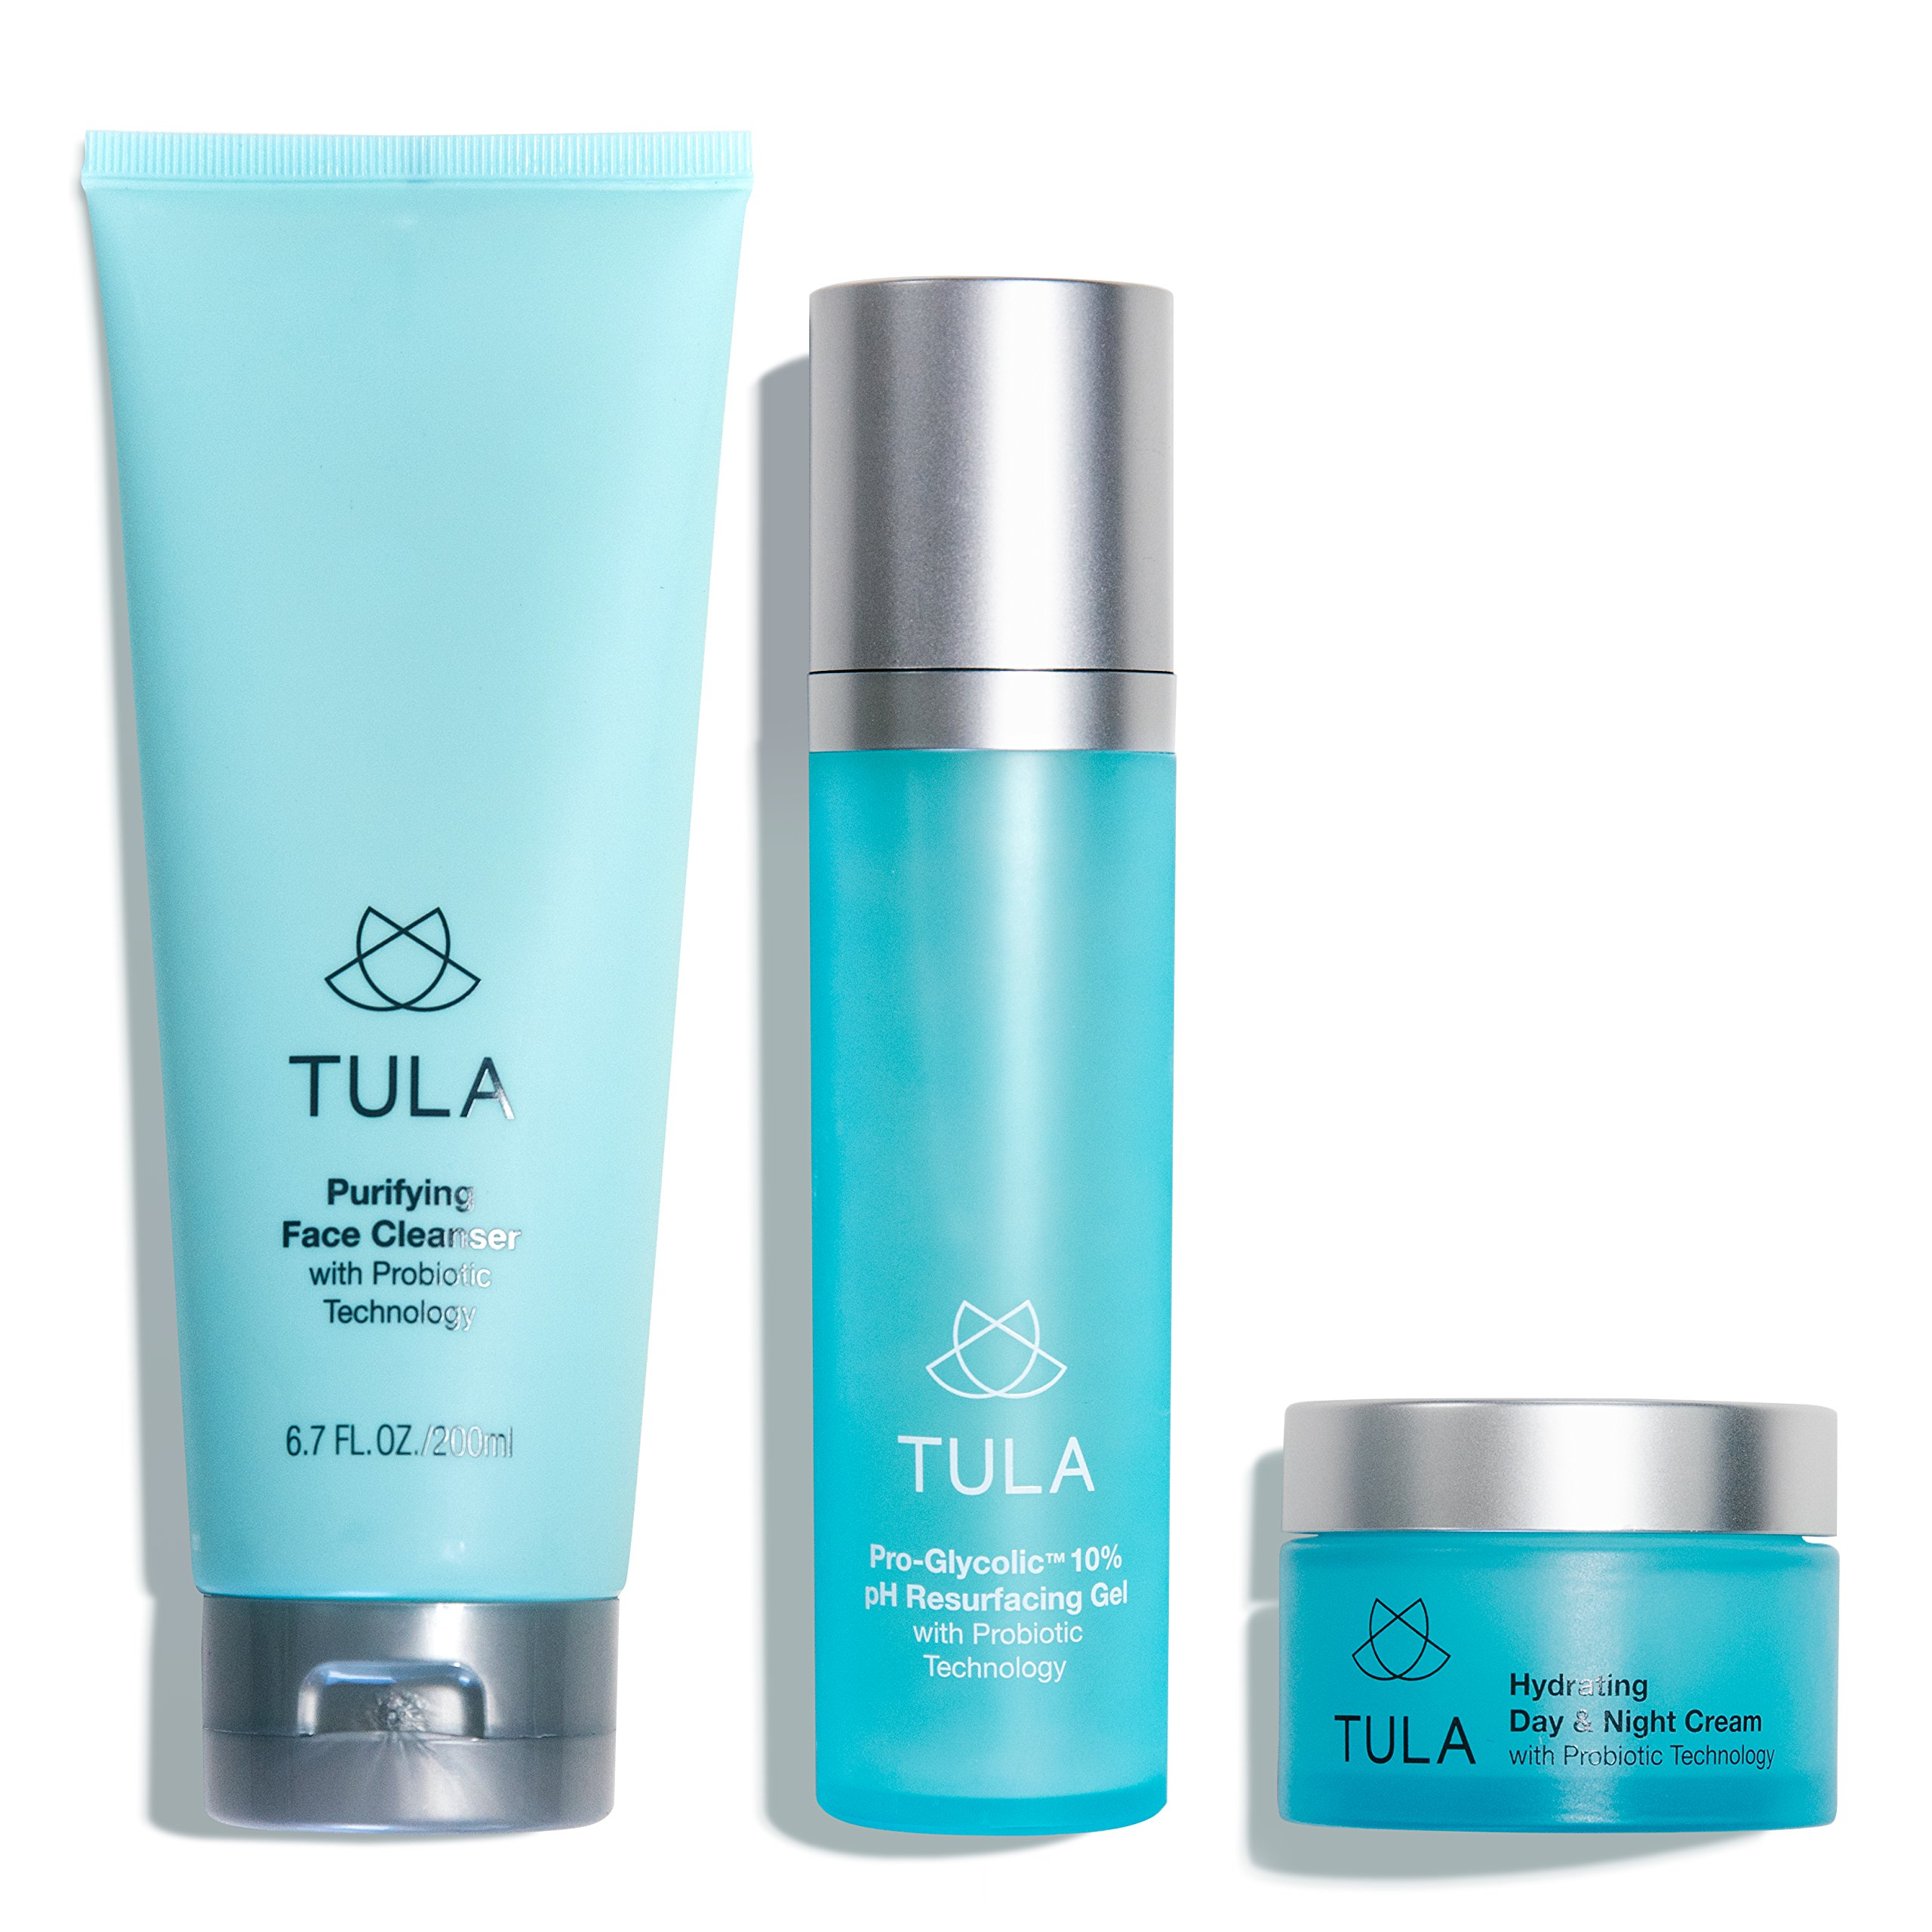 TULA Probiotic Skin Care 3-Step Balanced Skin Bundle | Full-Size Face Wash, Day & Night Face Moisturizer, Pro-Glycolic Resurfacing Face Toner | Best for Normal and Dry Skin by TULA